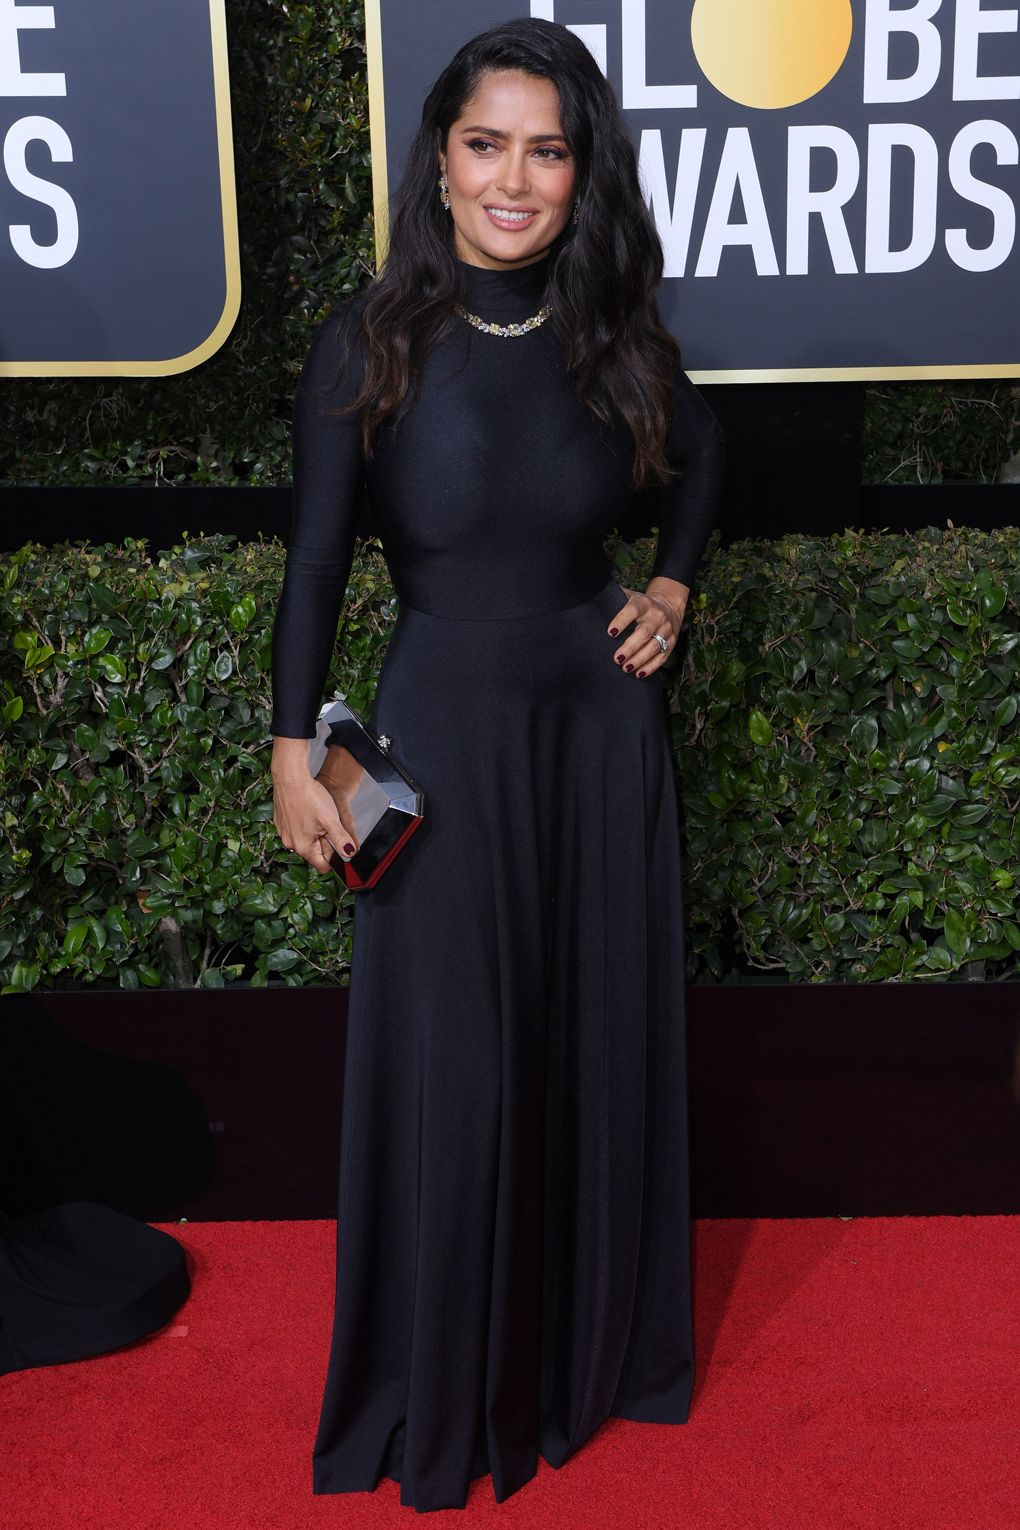 golden globes 2019 - photo #46